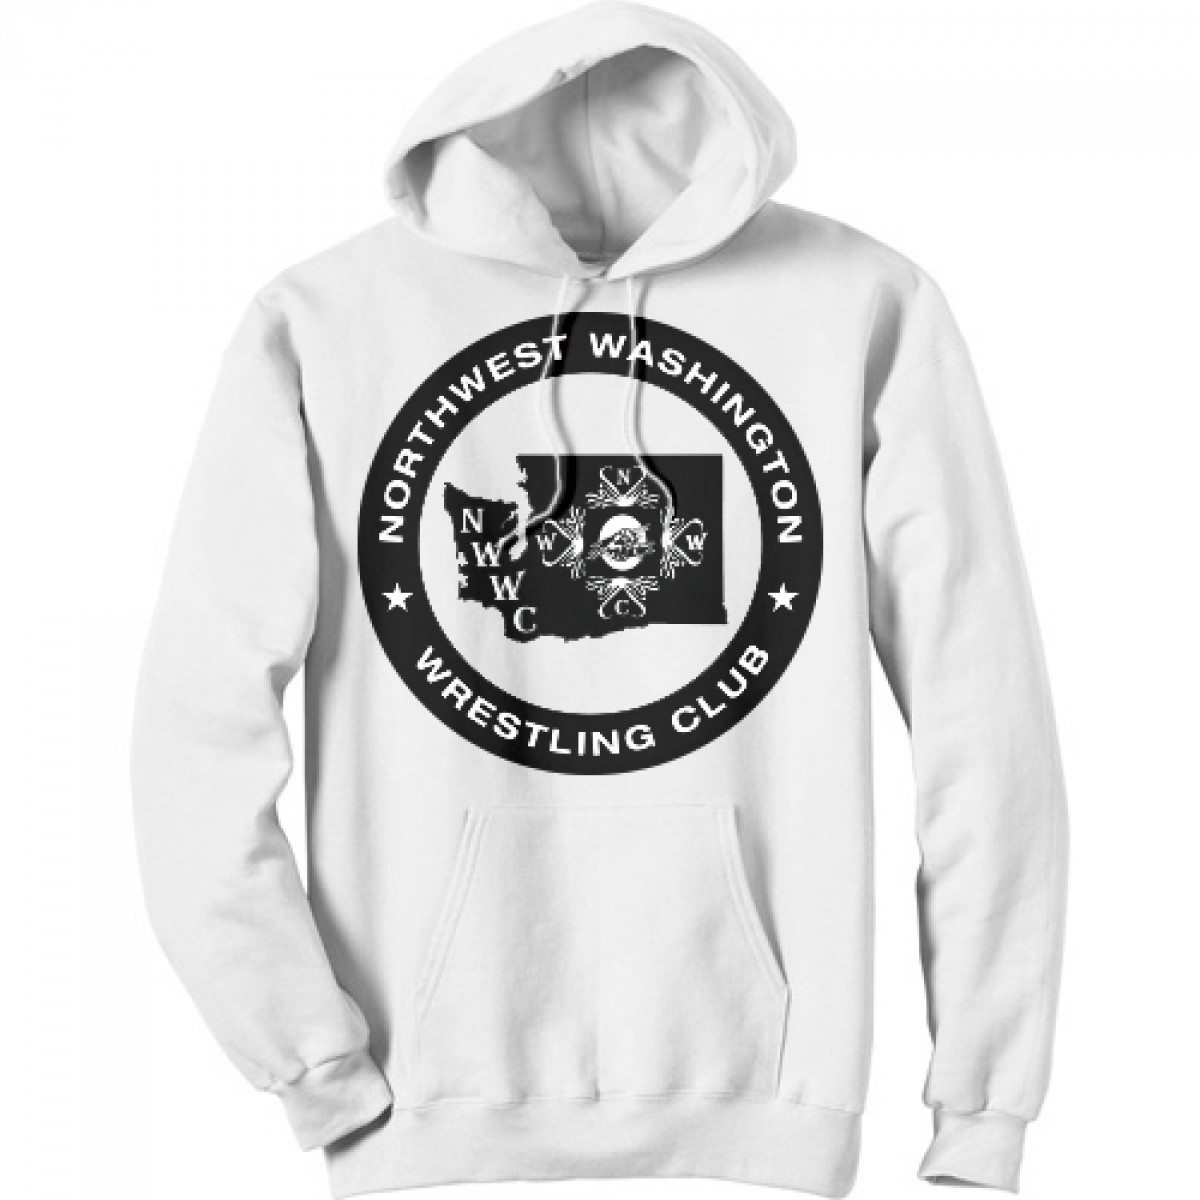 NWWC white hoodie with the main logo in black-White-L